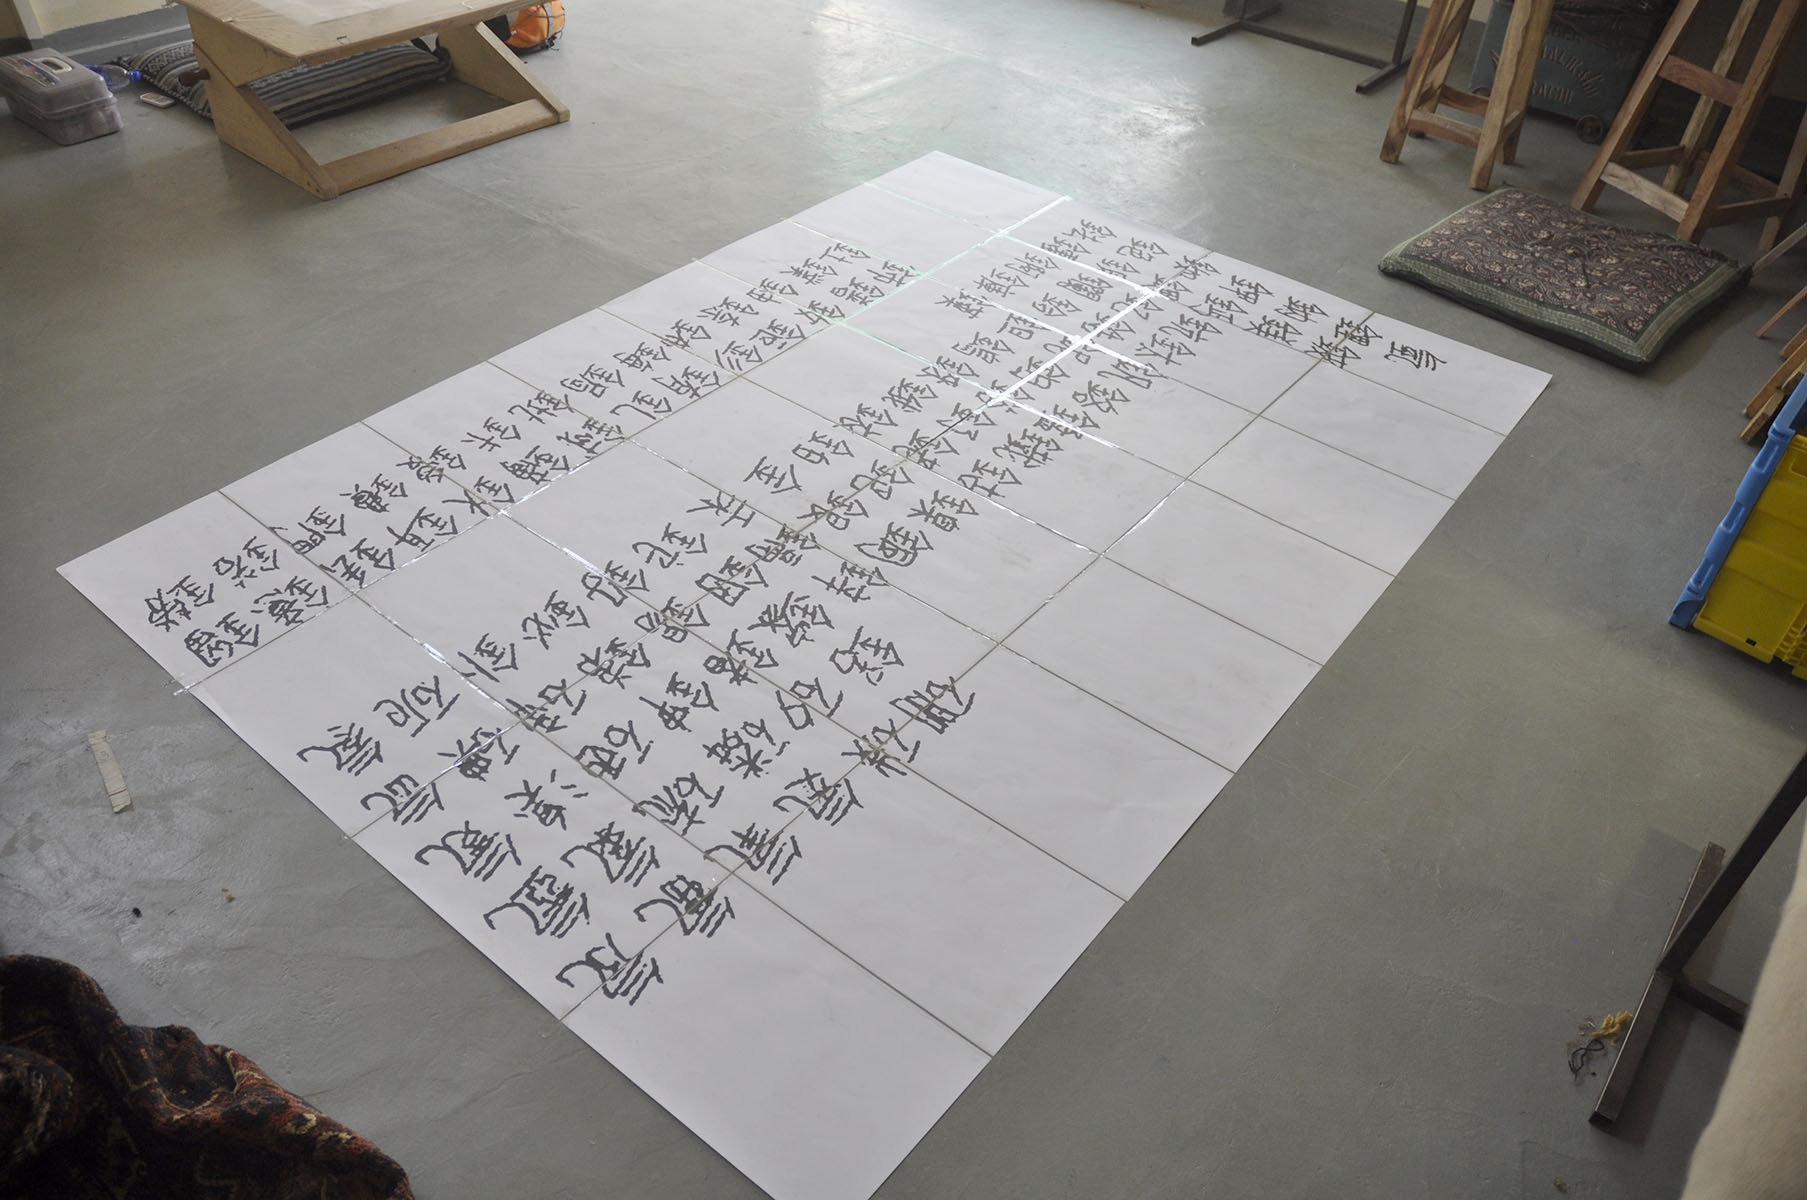 David chalmers alesworth chinese periodic table c1926 hand written web gamestrikefo Images